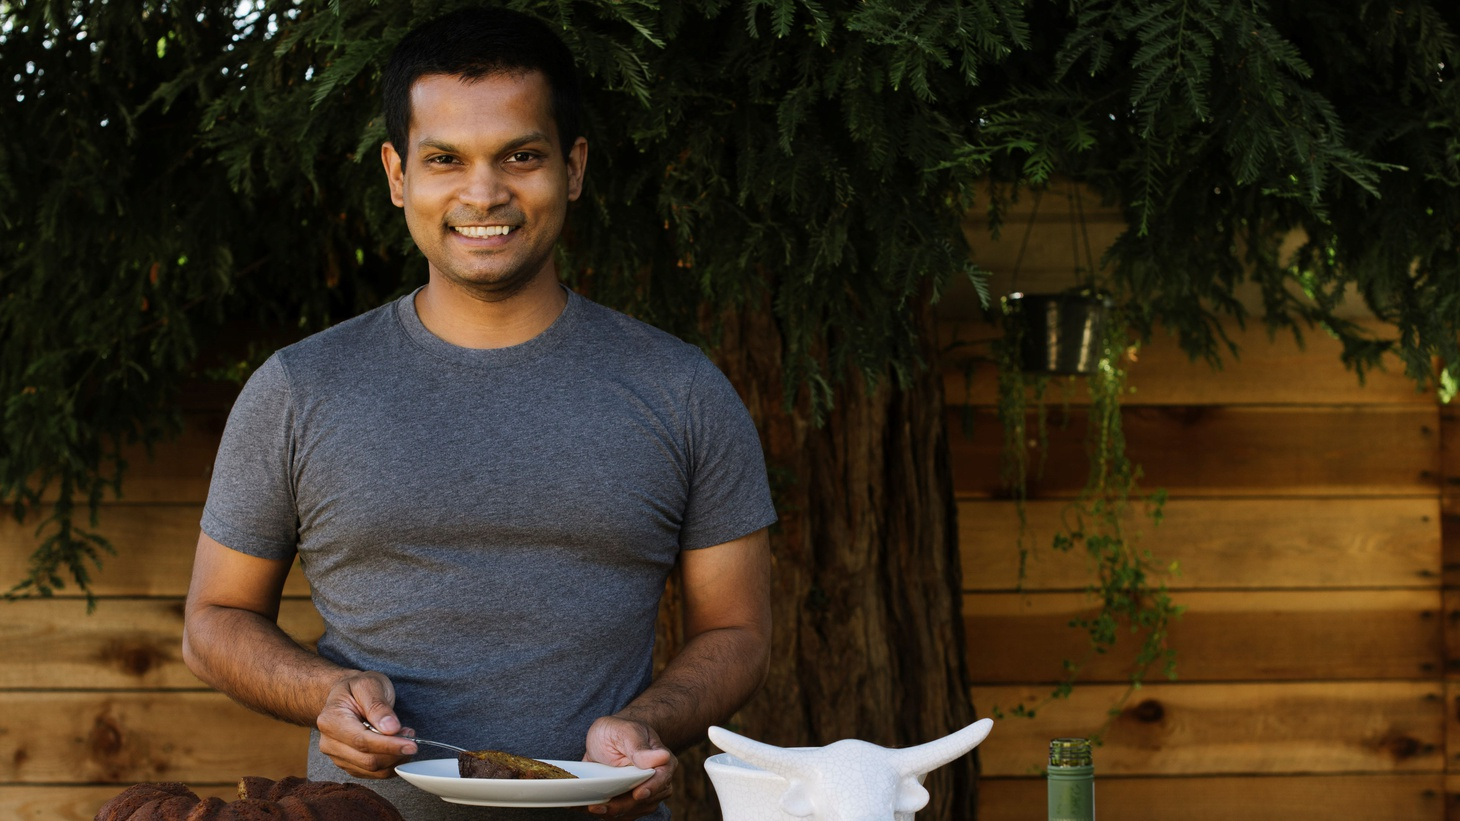 Nik Sharma's path has led from Mumbai to the U.S., and from the world of genetics to food writing.